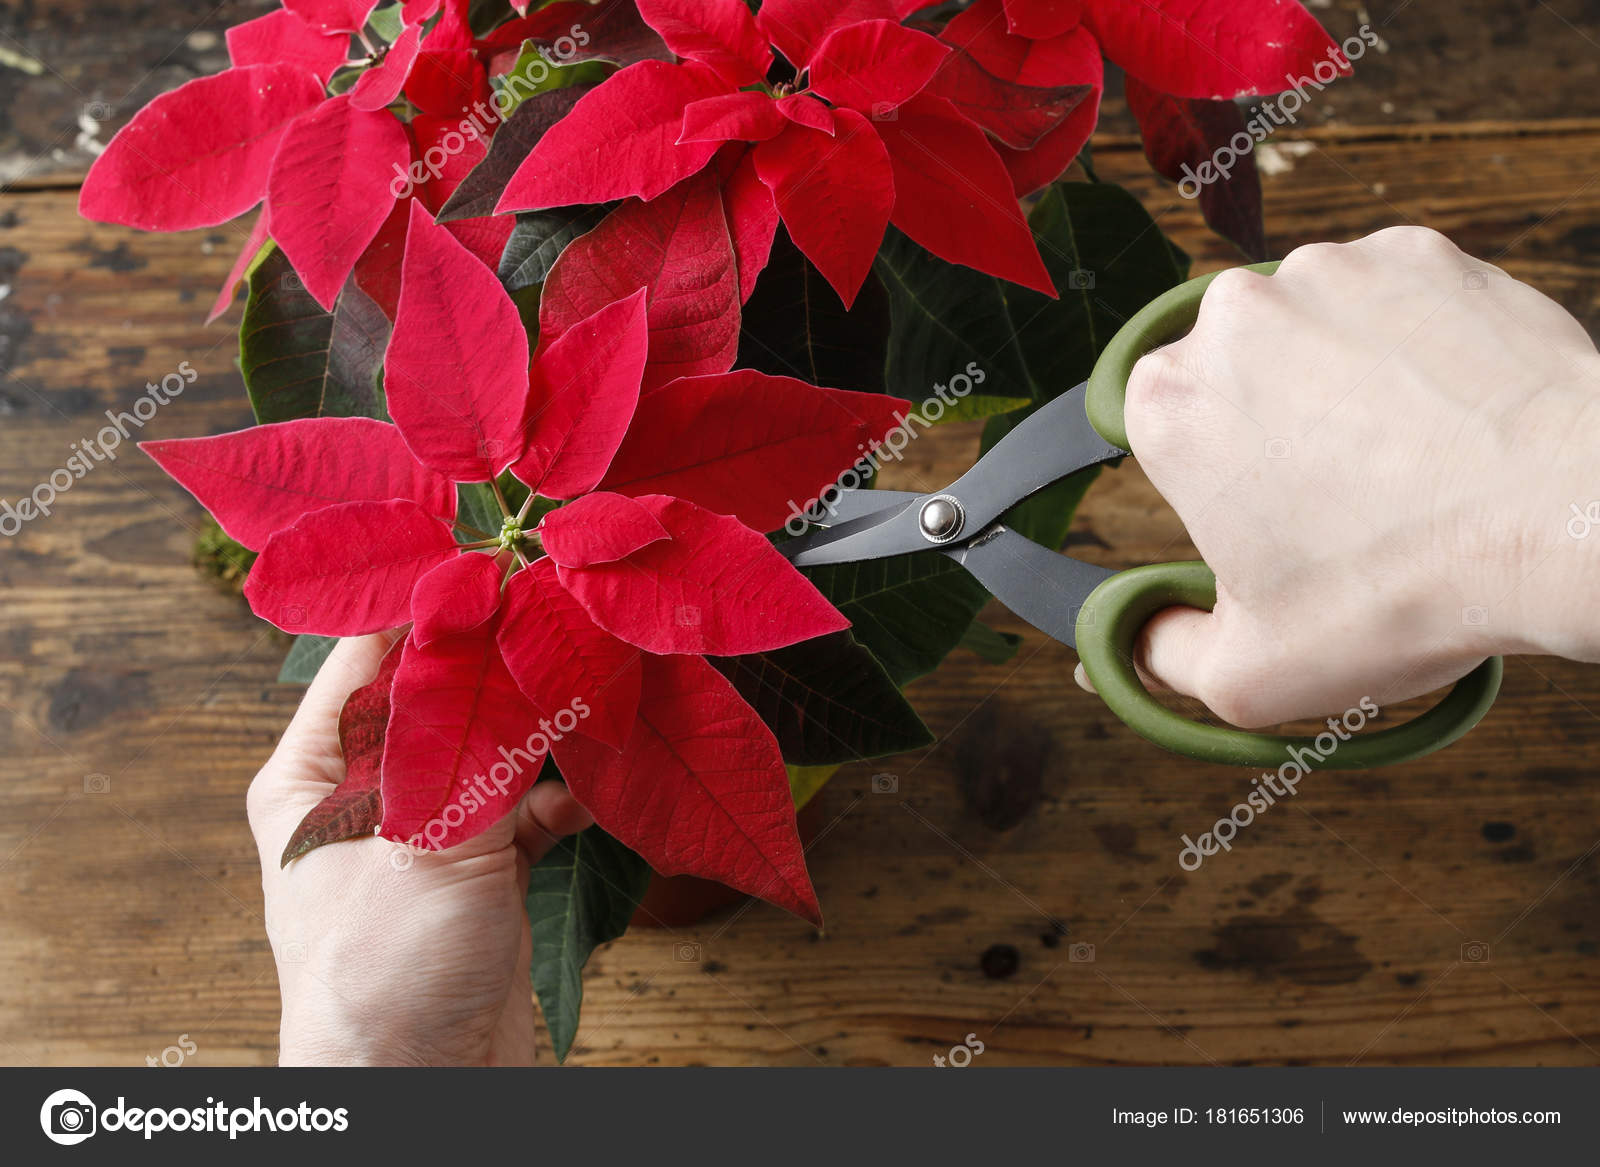 How to make christmas table decoration with red poinsettia flower and moss ball.